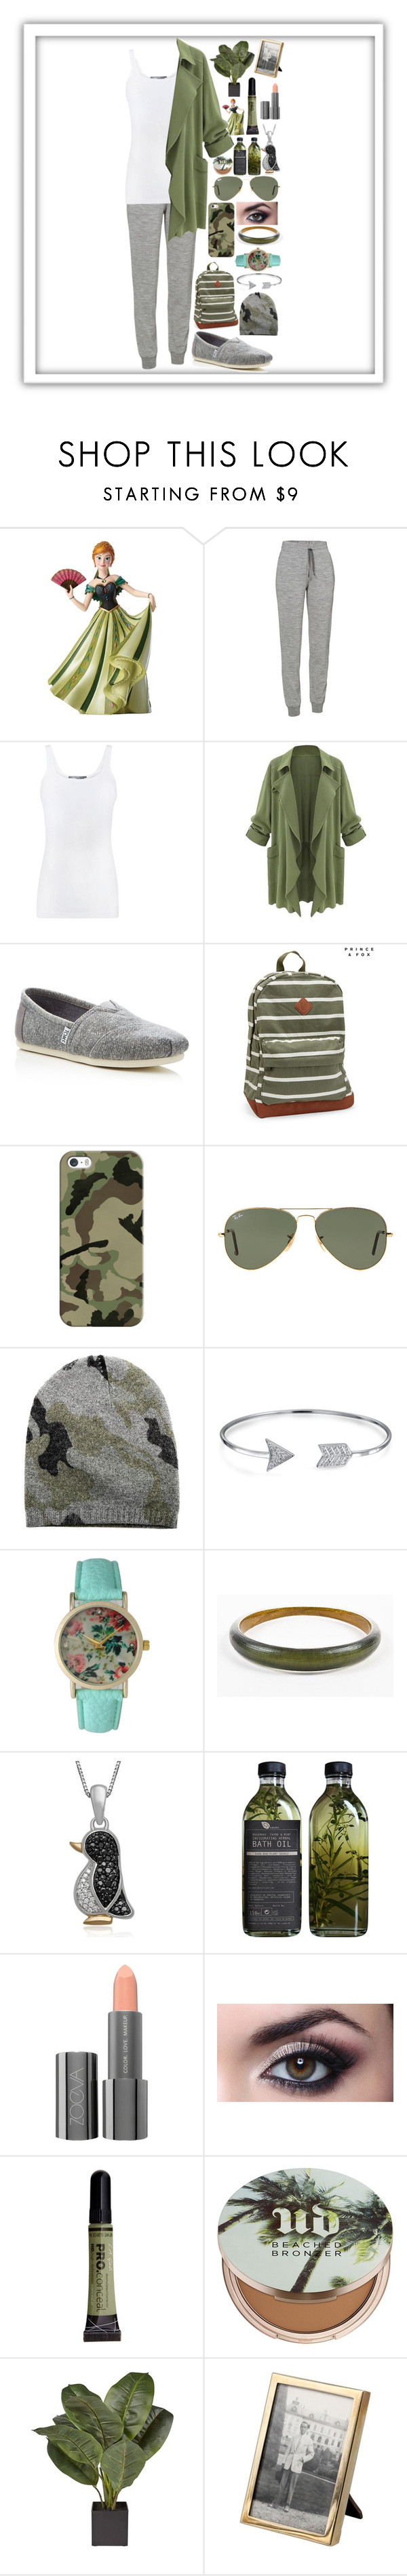 """""""Lazy Day"""" by awesomel4125 ❤ liked on Polyvore featuring Disney, Icebreaker, Vince, TOMS, Aéropostale, Casetify, Ray-Ban, Blue & Cream, Bling Jewelry and Olivia Pratt"""